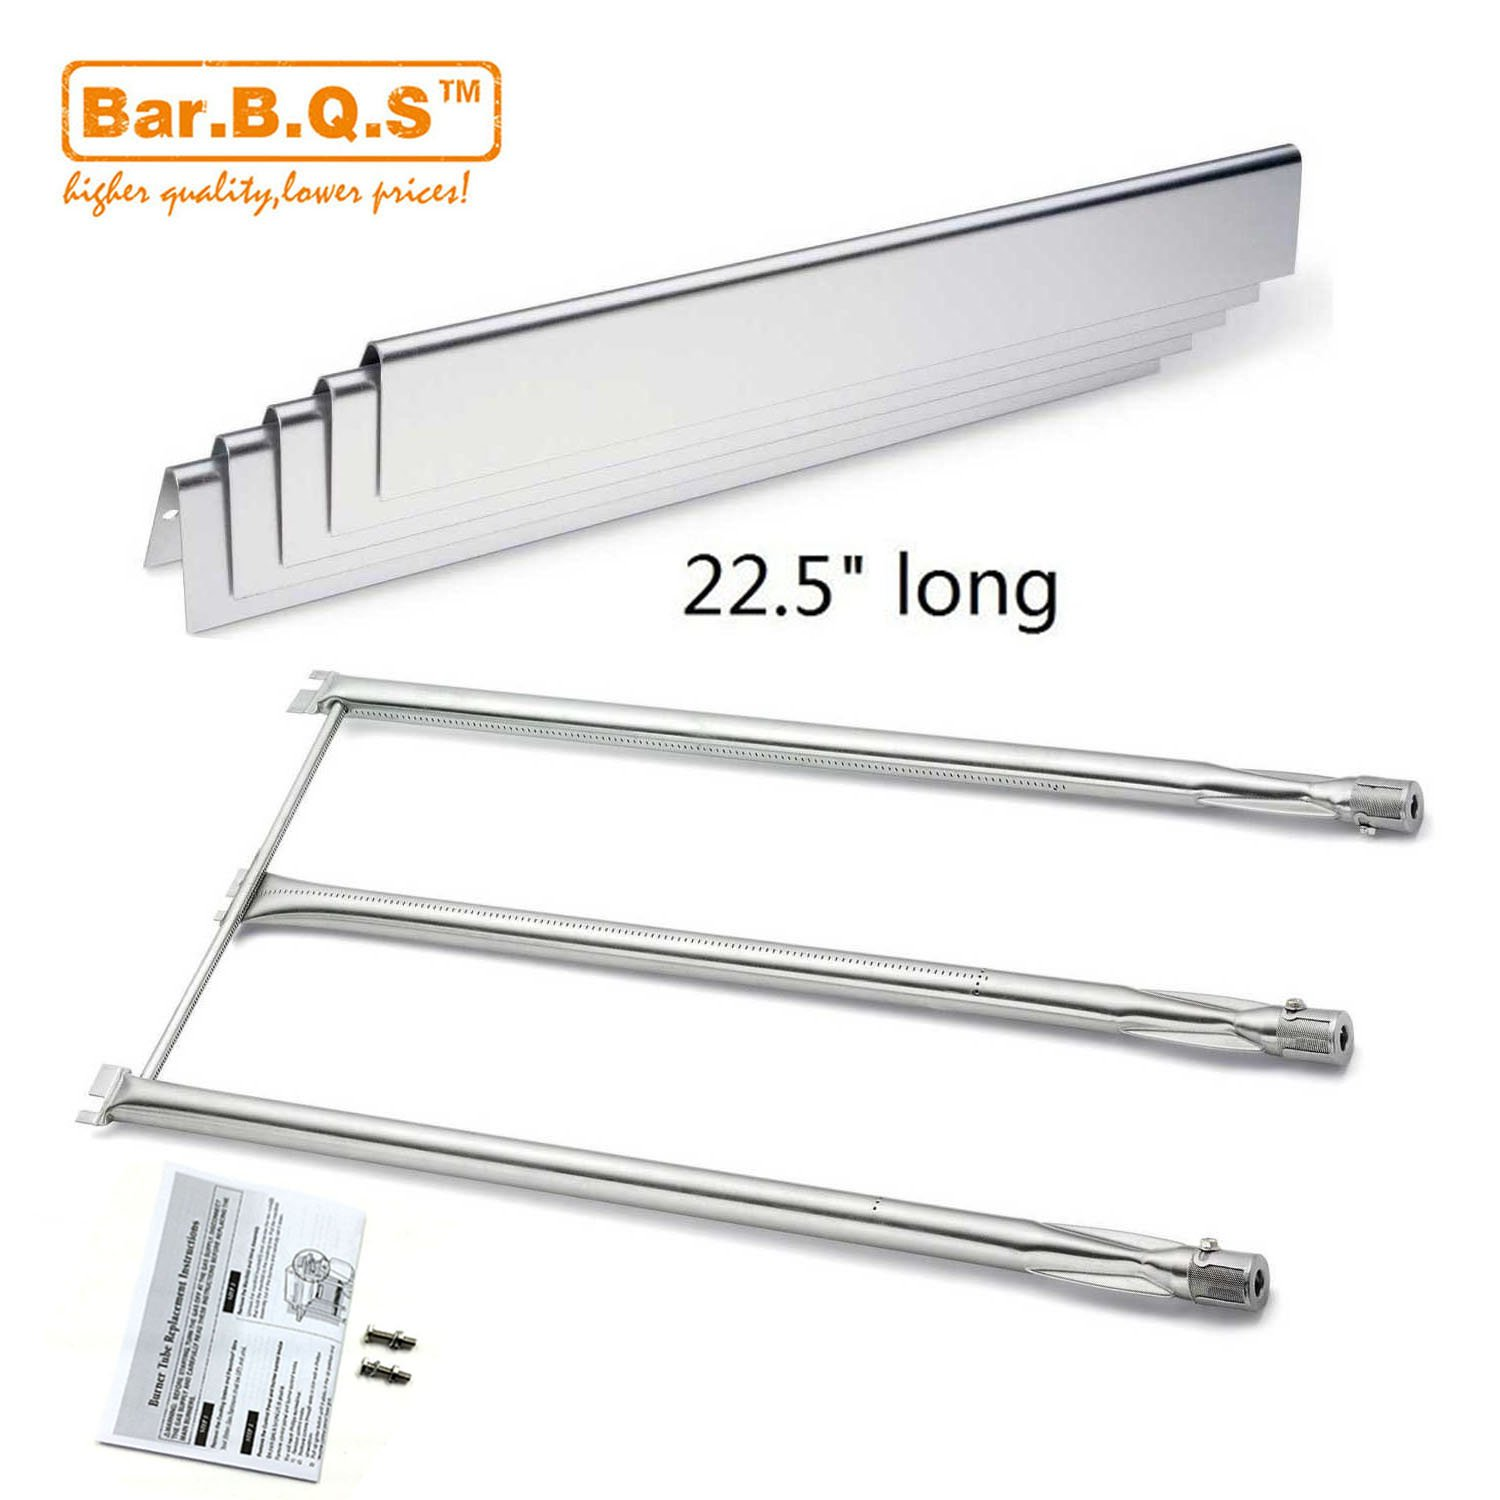 Bar.b.q.s Replacement Stainless Steel Burner 7508 and Stainless Steel heat plate 7537 for Weber Models: Genesis Silver B /& C Spirit 700 Gas Grill Genesis Gold B /& C, 2002 /& Newer Models